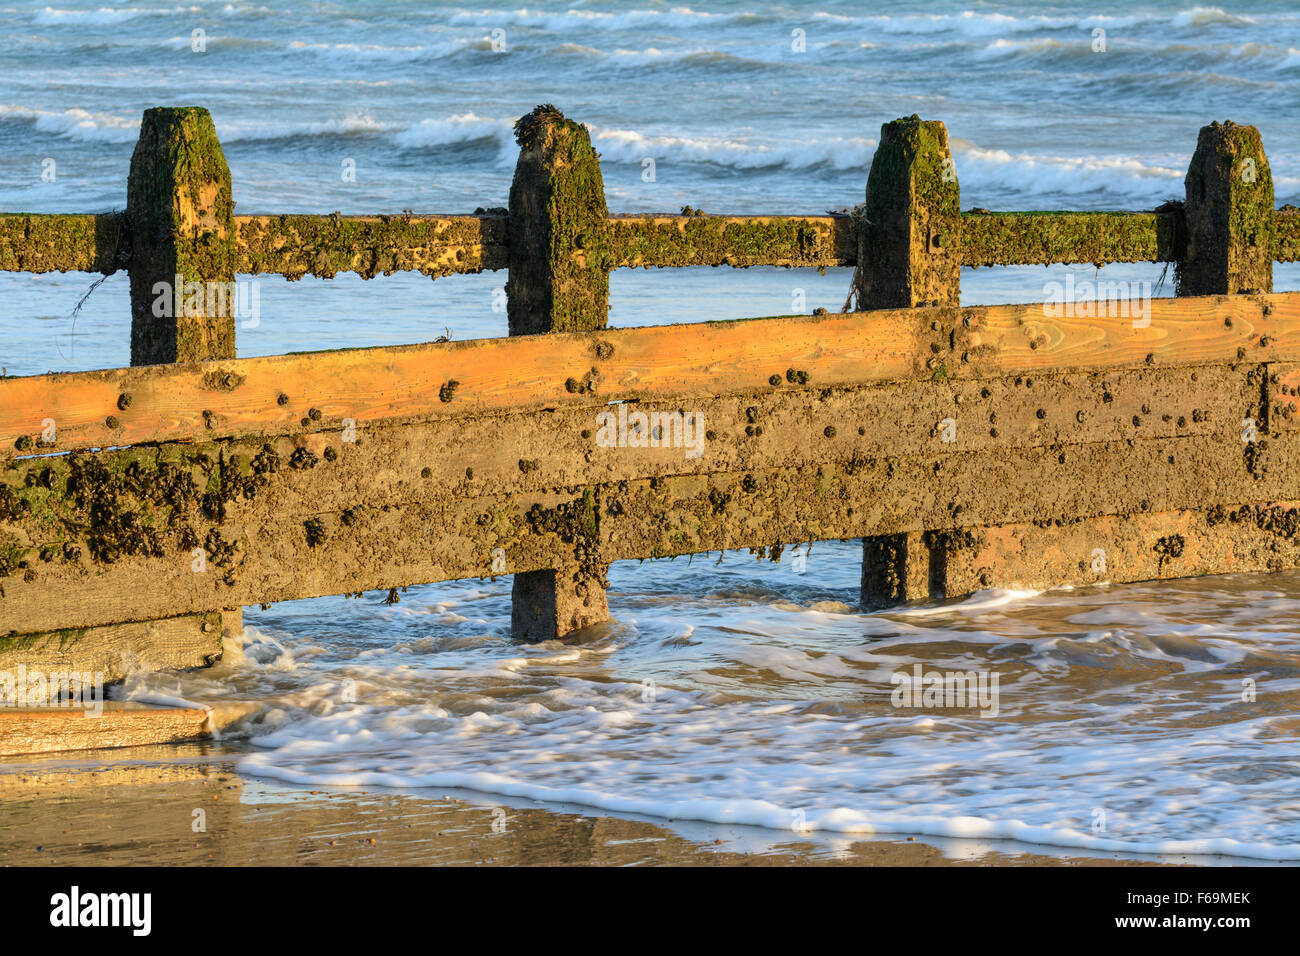 Groyne with a gap and sea passing through it on the beach. - Stock Image